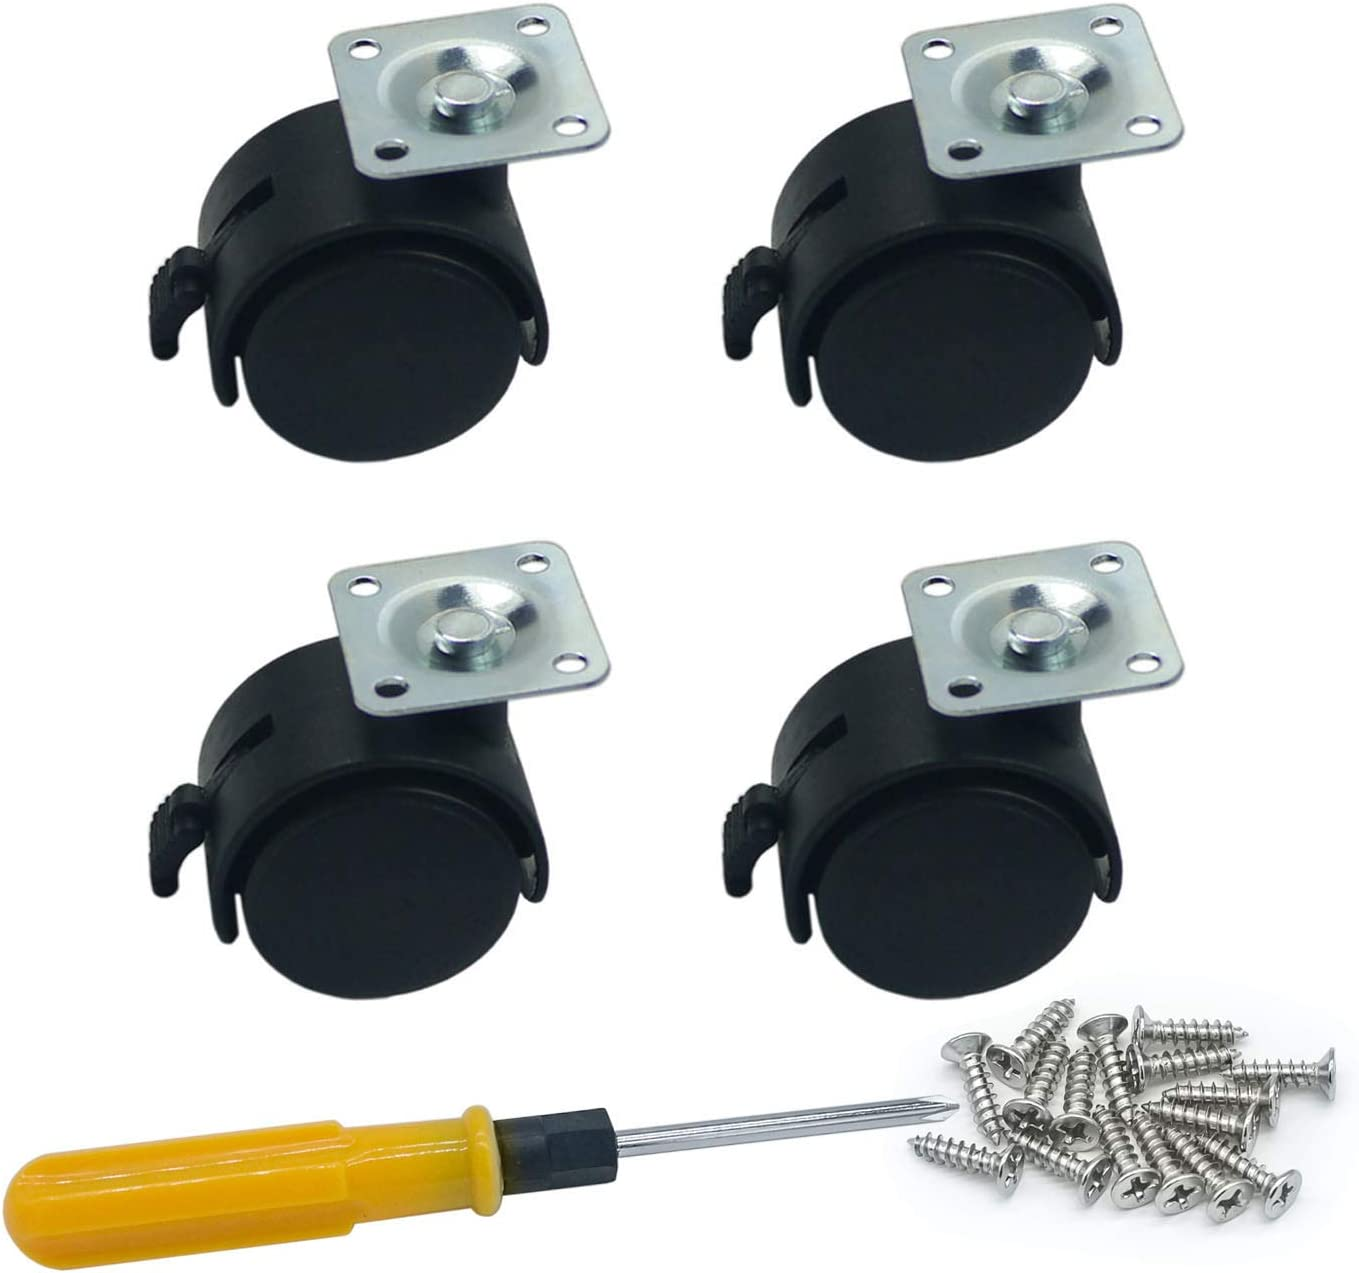 4 Piece Nylon Swivel Plate Caster for Furniture & Equipment Racks Brake Wheel (1.5 Inch Black)